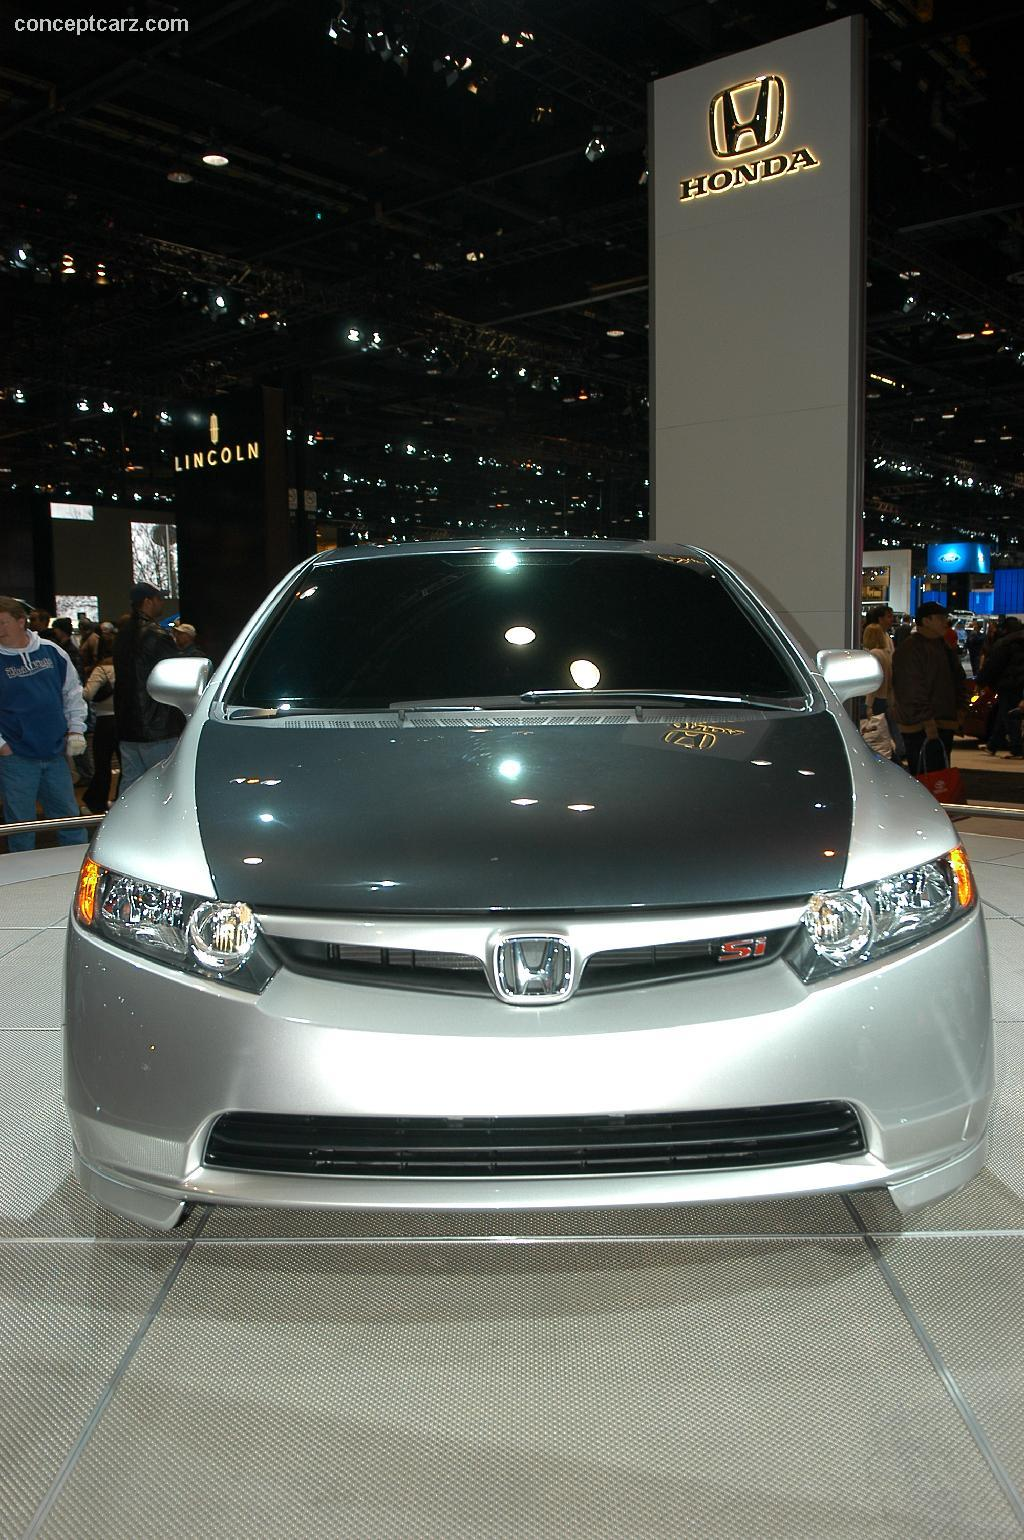 Pictures Alabaster Silver With Carbon Fiber Hood Black Hood 8th Generation Honda Civic Forum